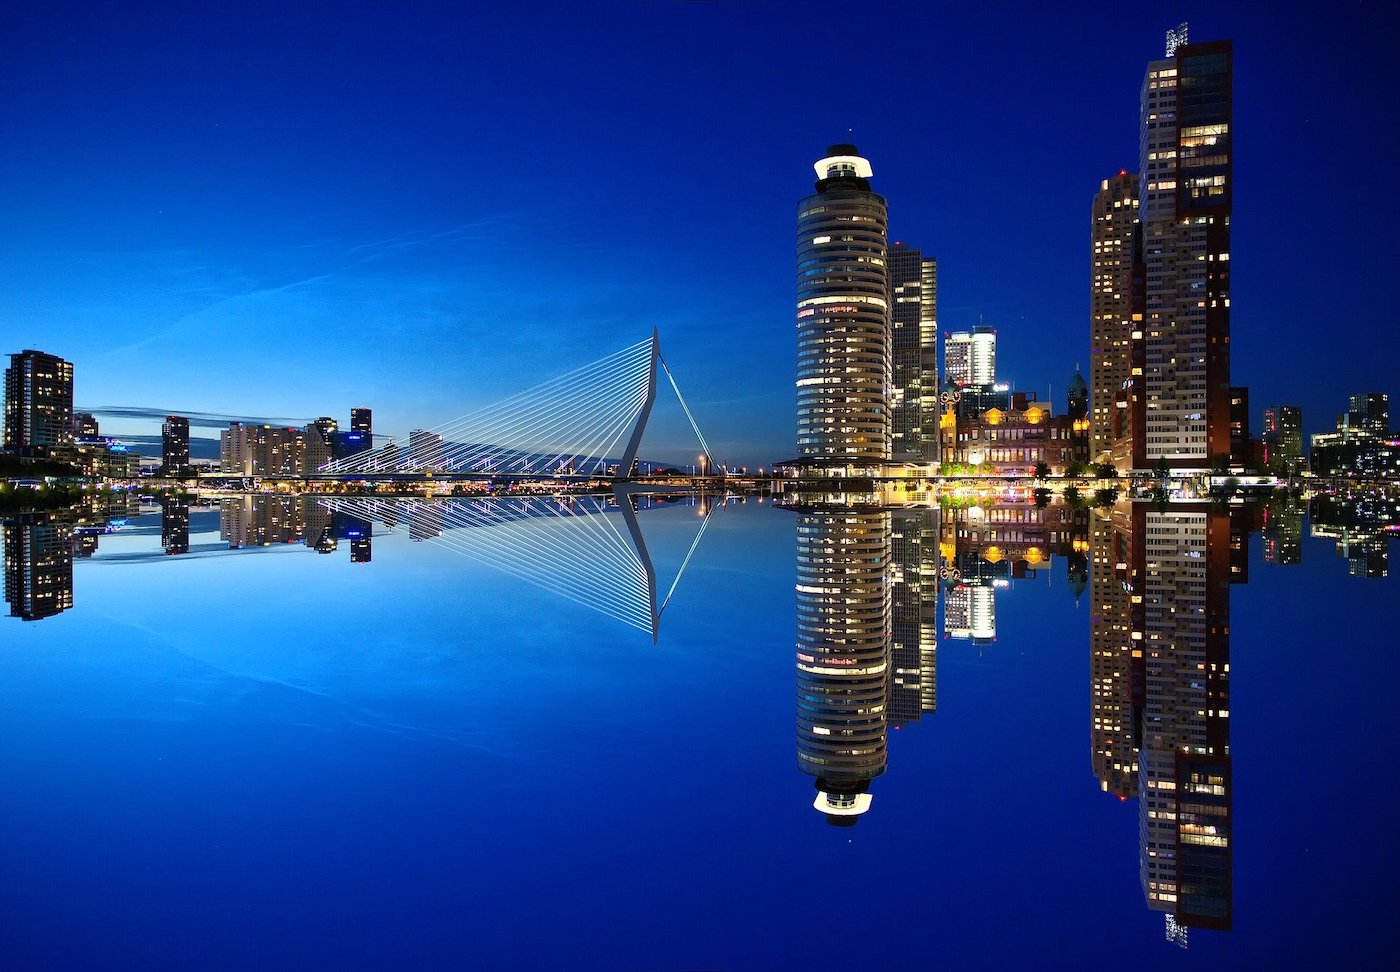 Rotterdam with a mirror image